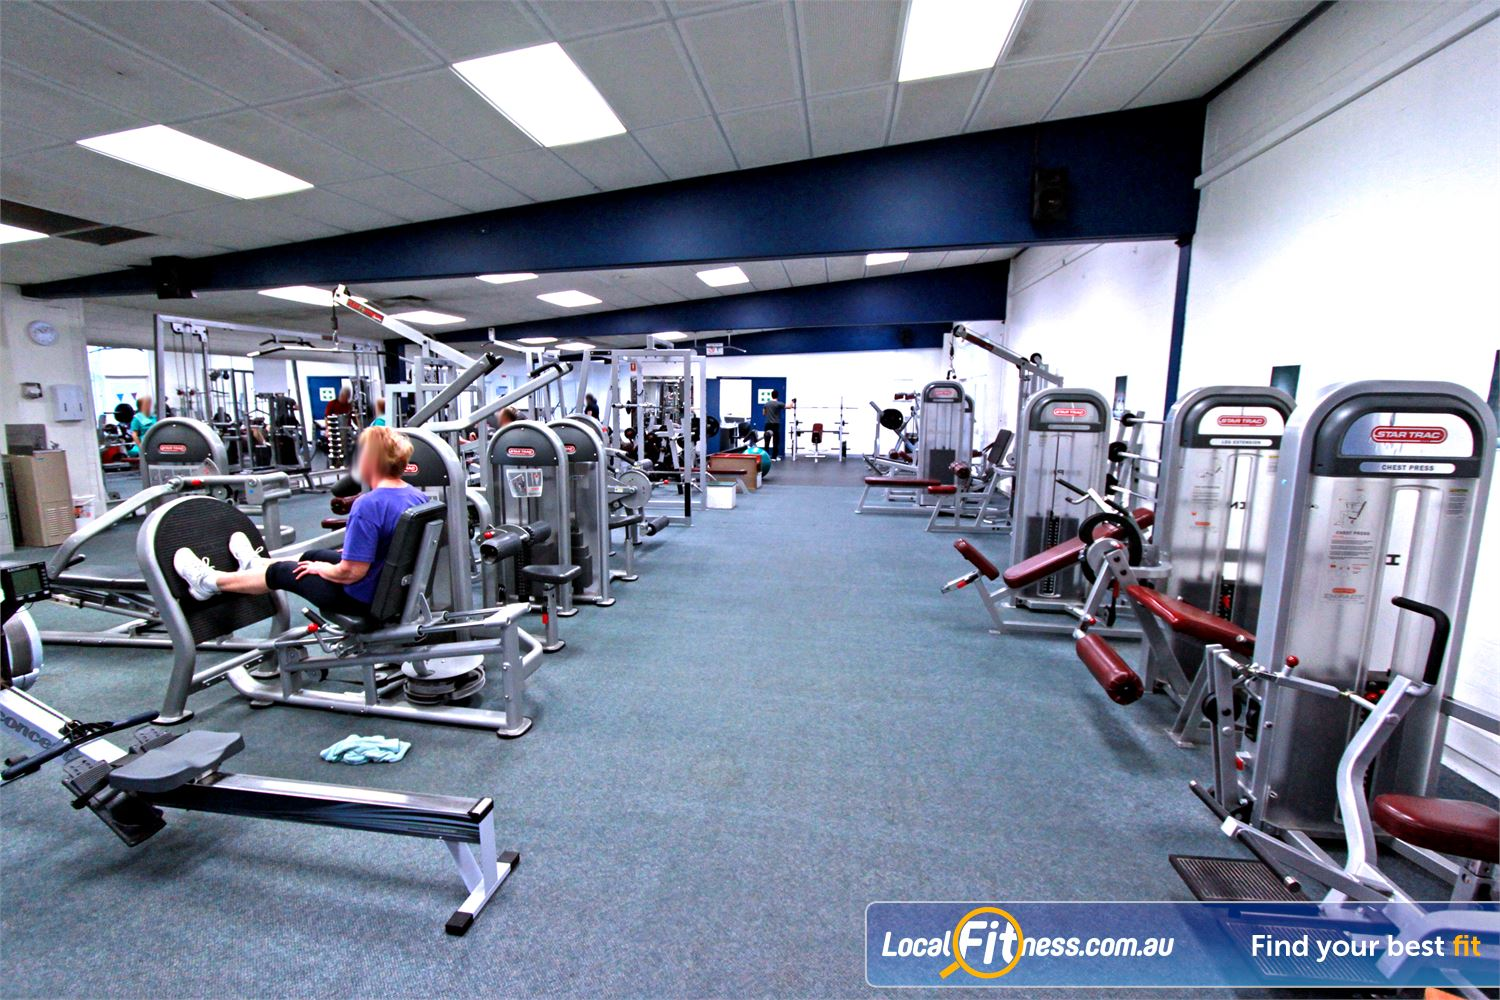 East Keilor Leisure Centre Near Niddrie Our East Keilor gym is fully equipped with latest strength training equipment.